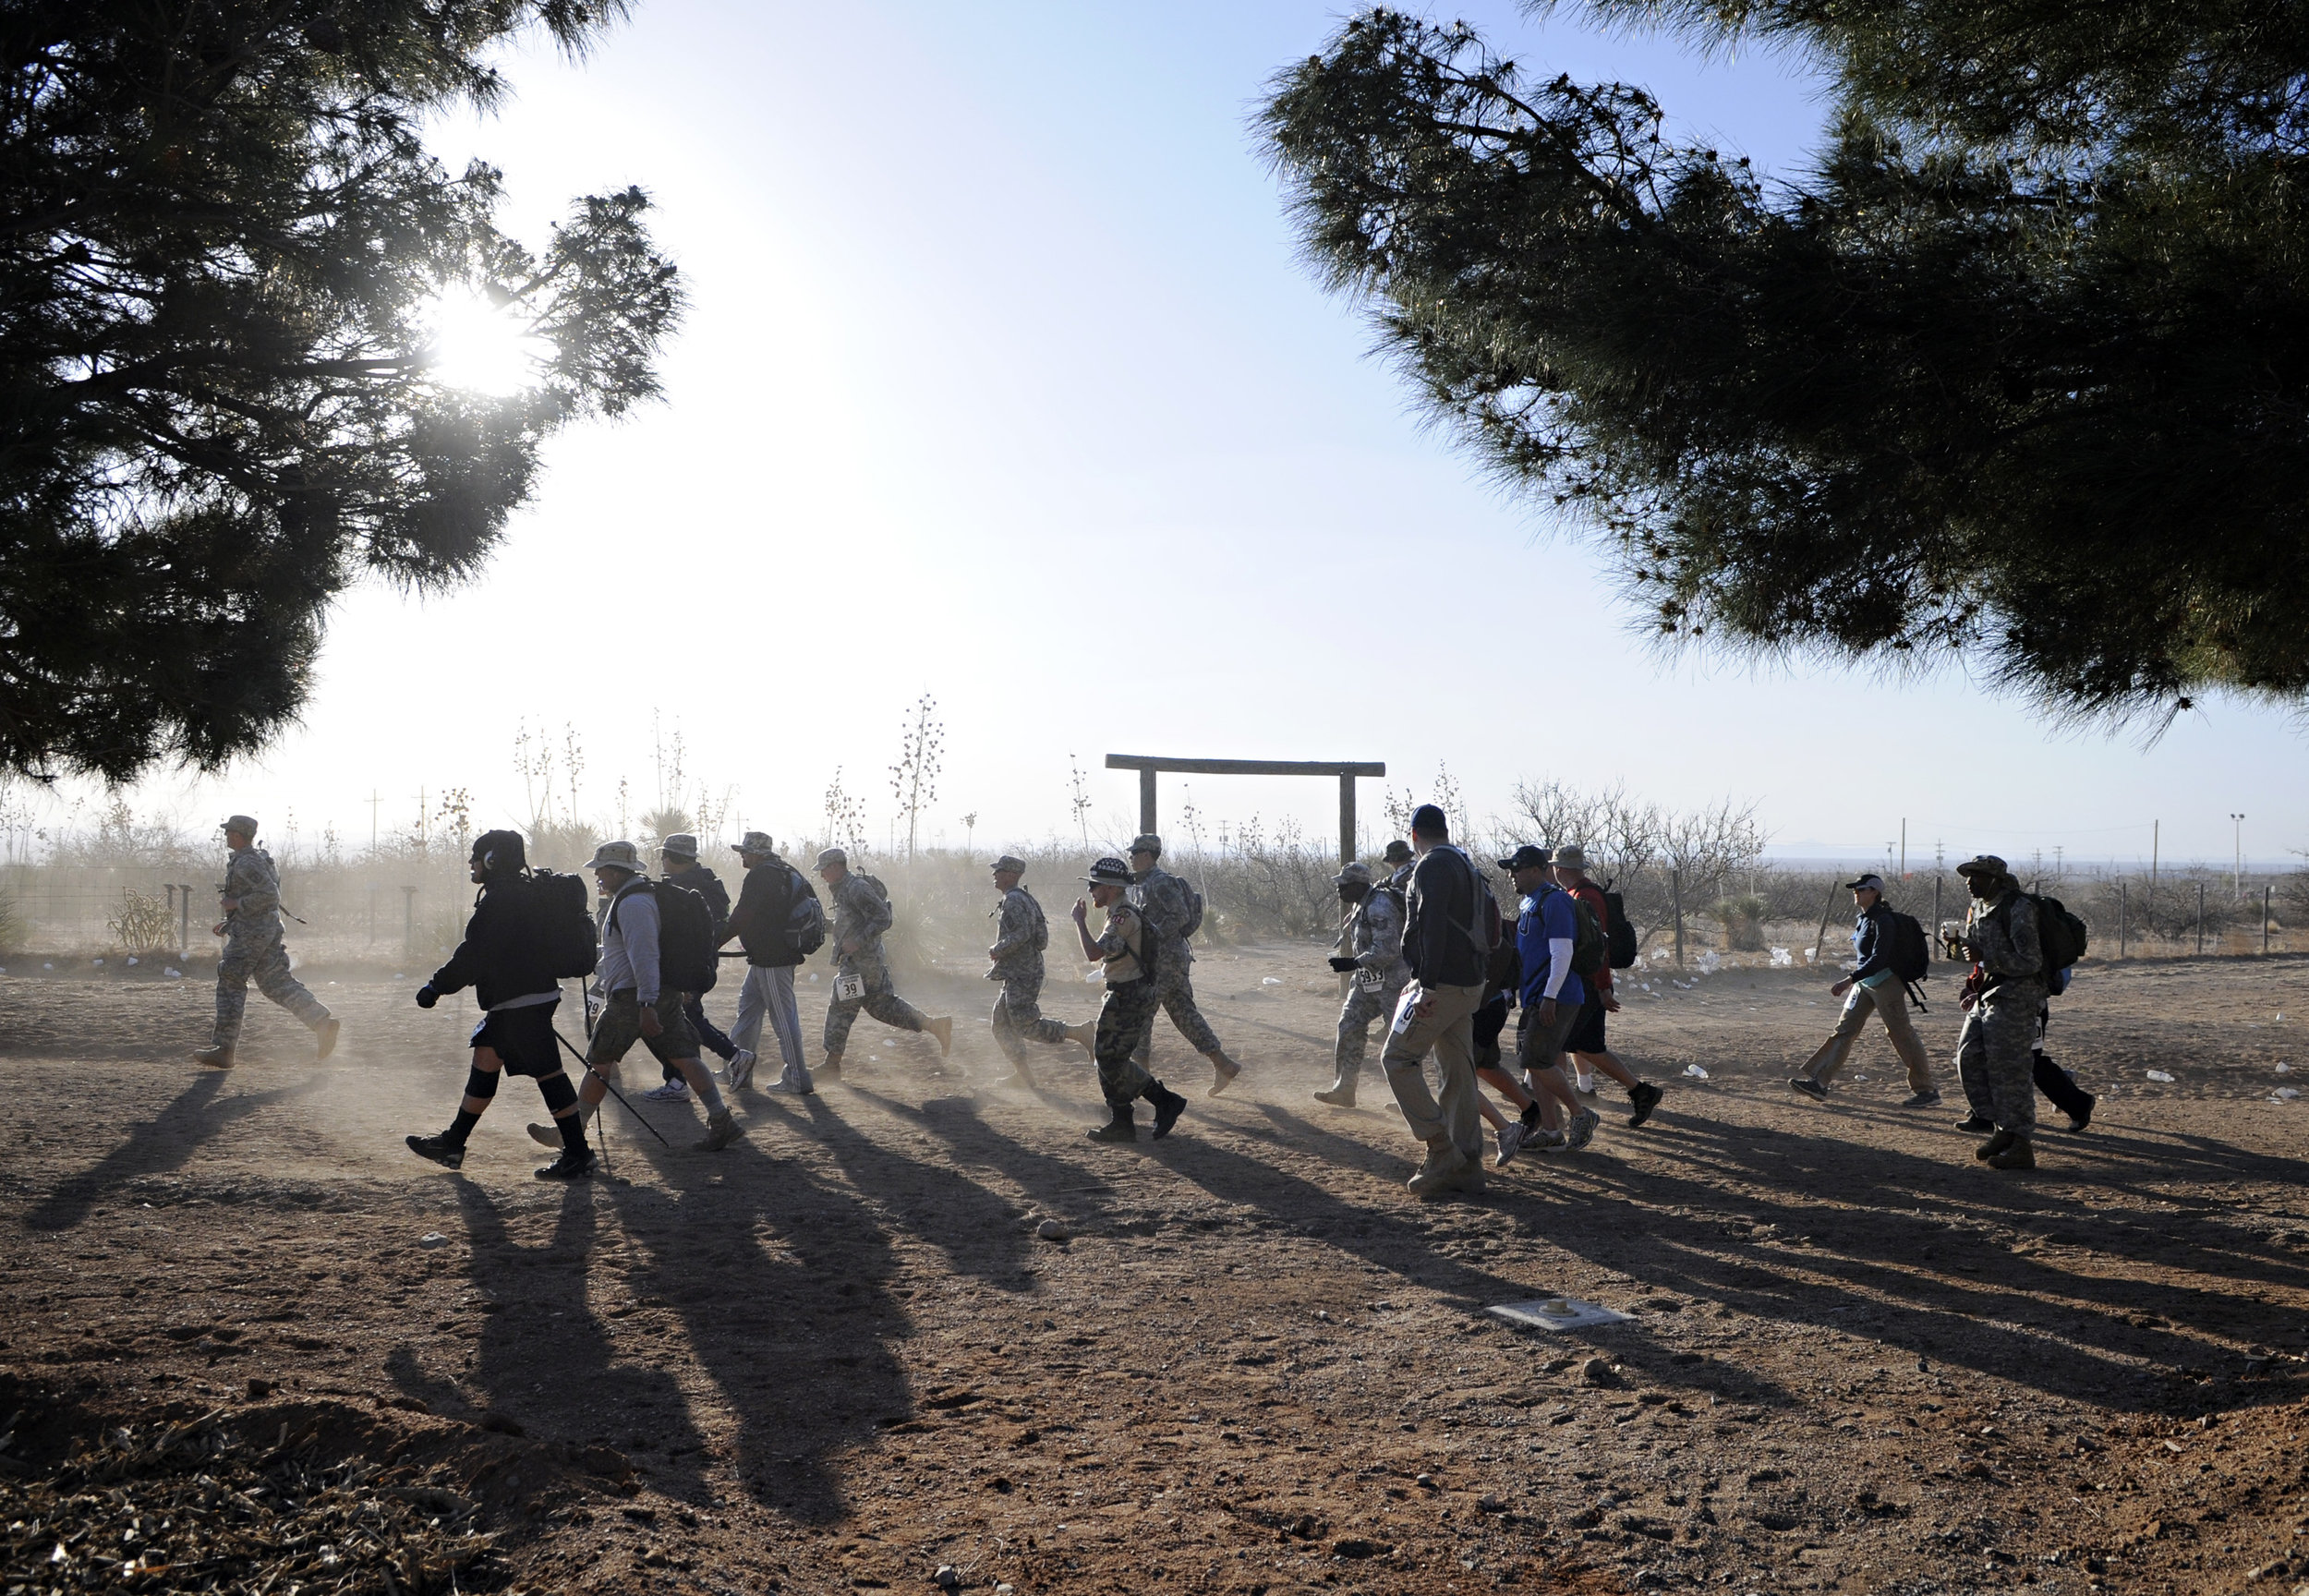 Walkers and runners kick up some dust along with the strong winds that seemed to last all day during the 22nd Annual Bataan Memorial Death March at White Sands Missile Range, Sunday, March 27, 2011. (Morgan Petroski/Albuquerque Journal)